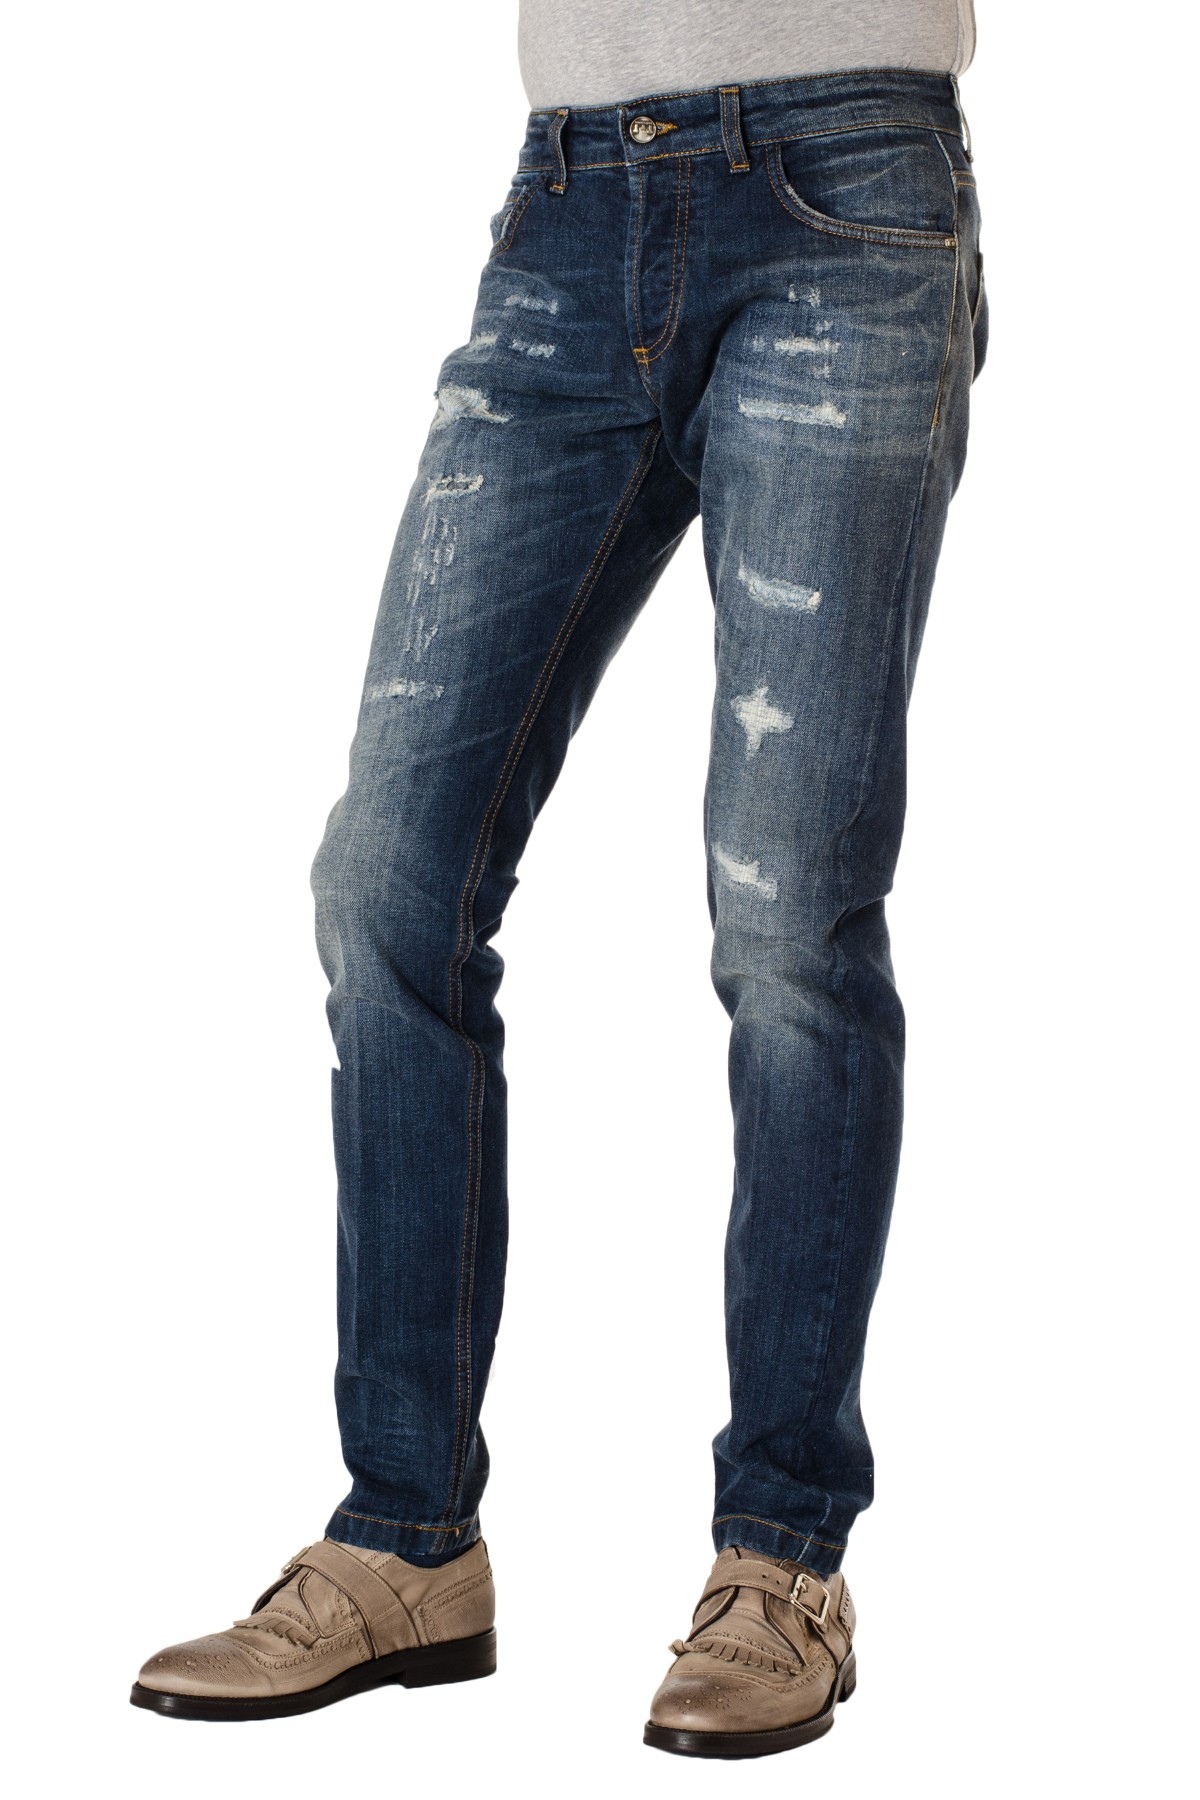 New Arrival Cheap Online Clearance With Paypal DENIM - Denim trousers Entre Amis Ebay Cheap Online jN3JsRlyw